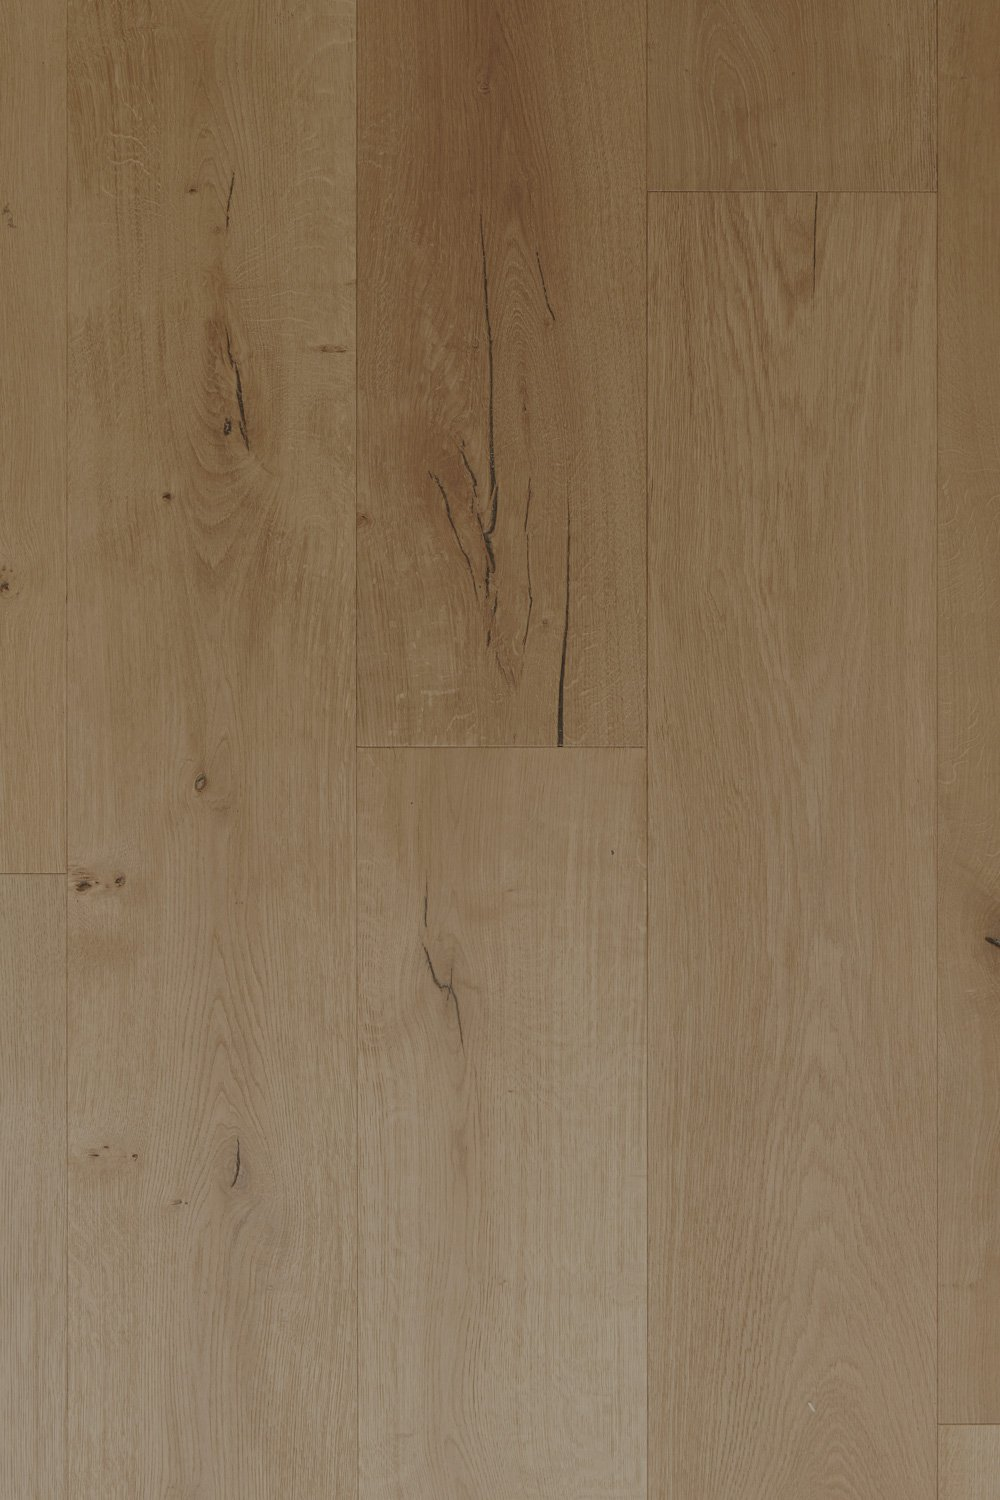 Wear Layer Thickness 4mm Plank Thickness 5 8 Plank Width 10 1 4 Lengths Random Up To 87 Most Pieces Are 87 Surface Texture Wire Brushed Finish Oil S